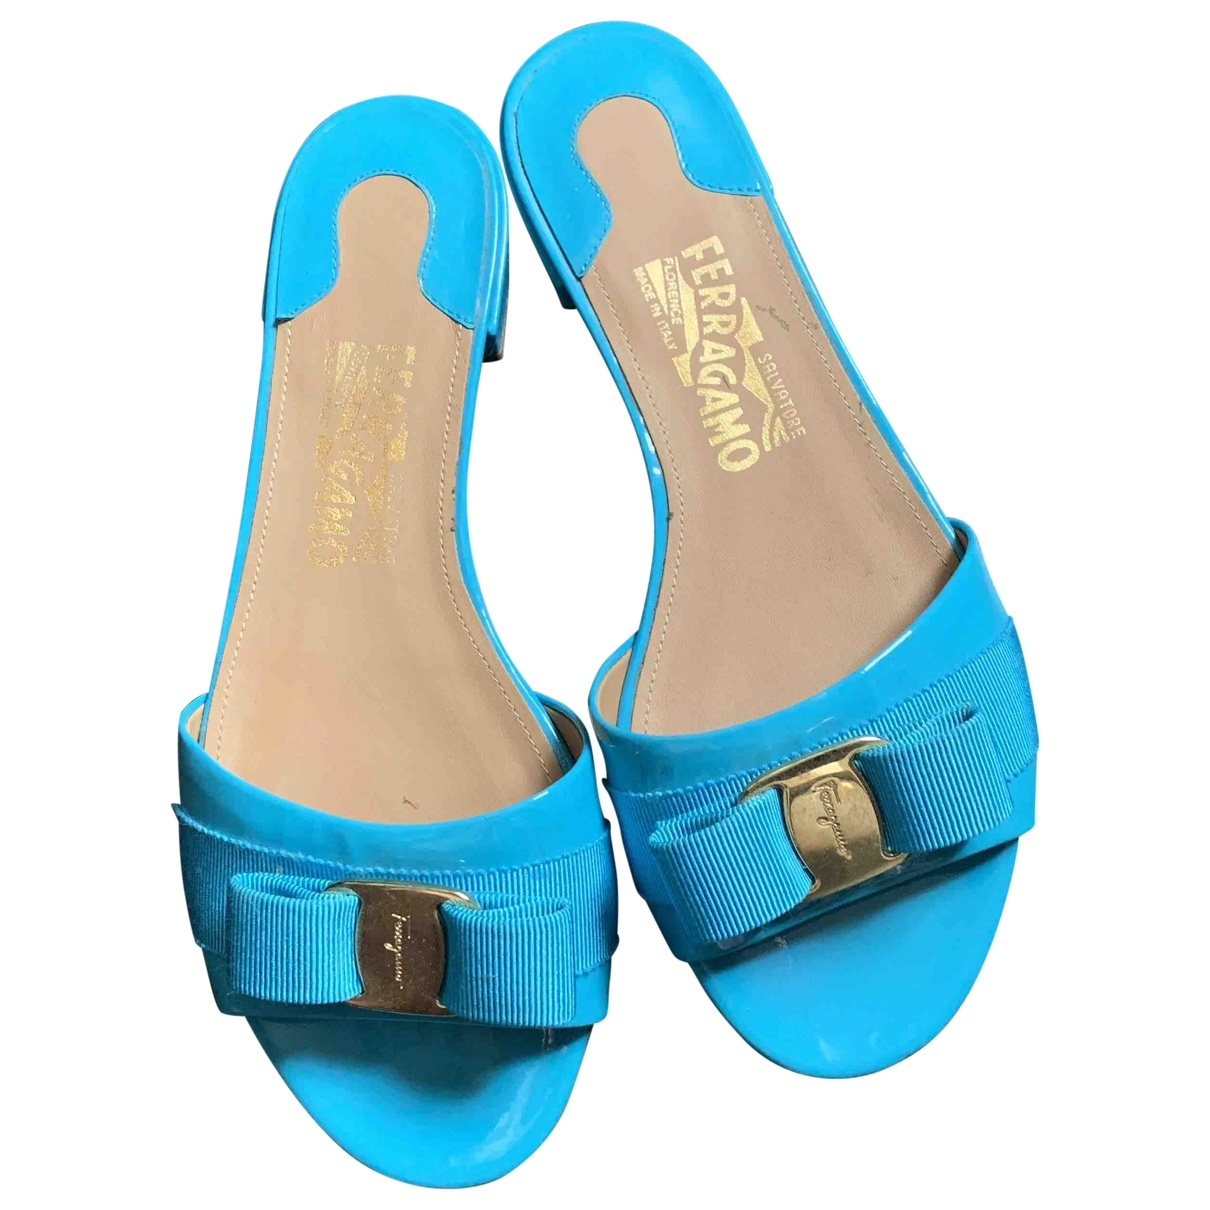 Salvatore Ferragamo \N Turquoise Patent leather Sandals for Women 7.5 US